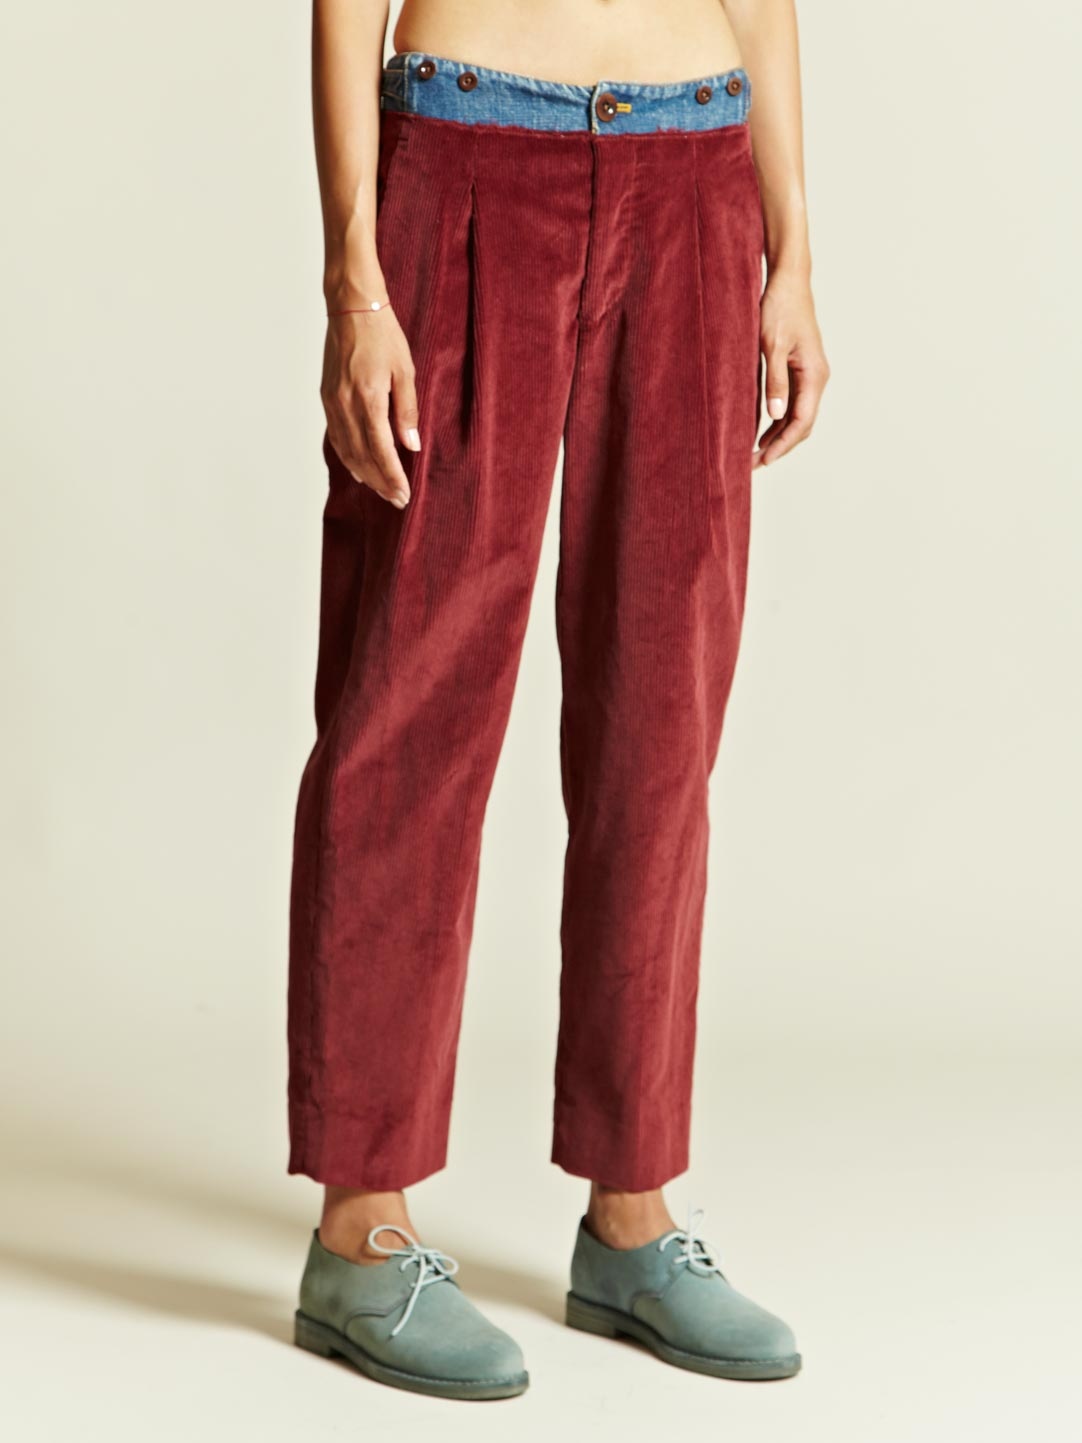 Unique Home Clothing Women Clothing Lounge Pants Sakhi Sang Lounge Pants